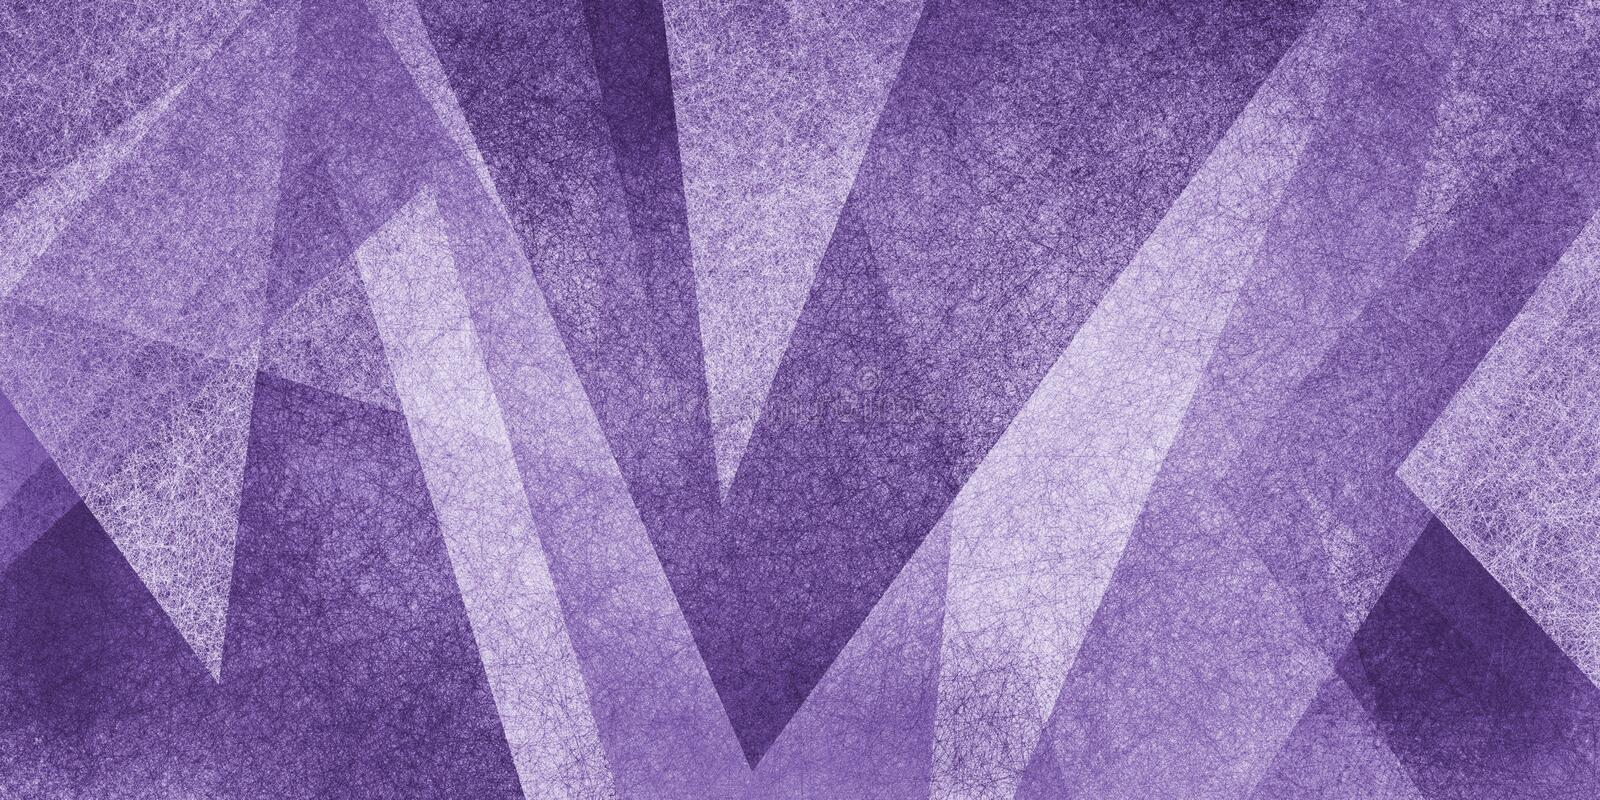 Purple and whiteabstract background with texture, geometric gray and white triangles and square shapes in layered abstract pattern. Purple and white abstract royalty free stock photos